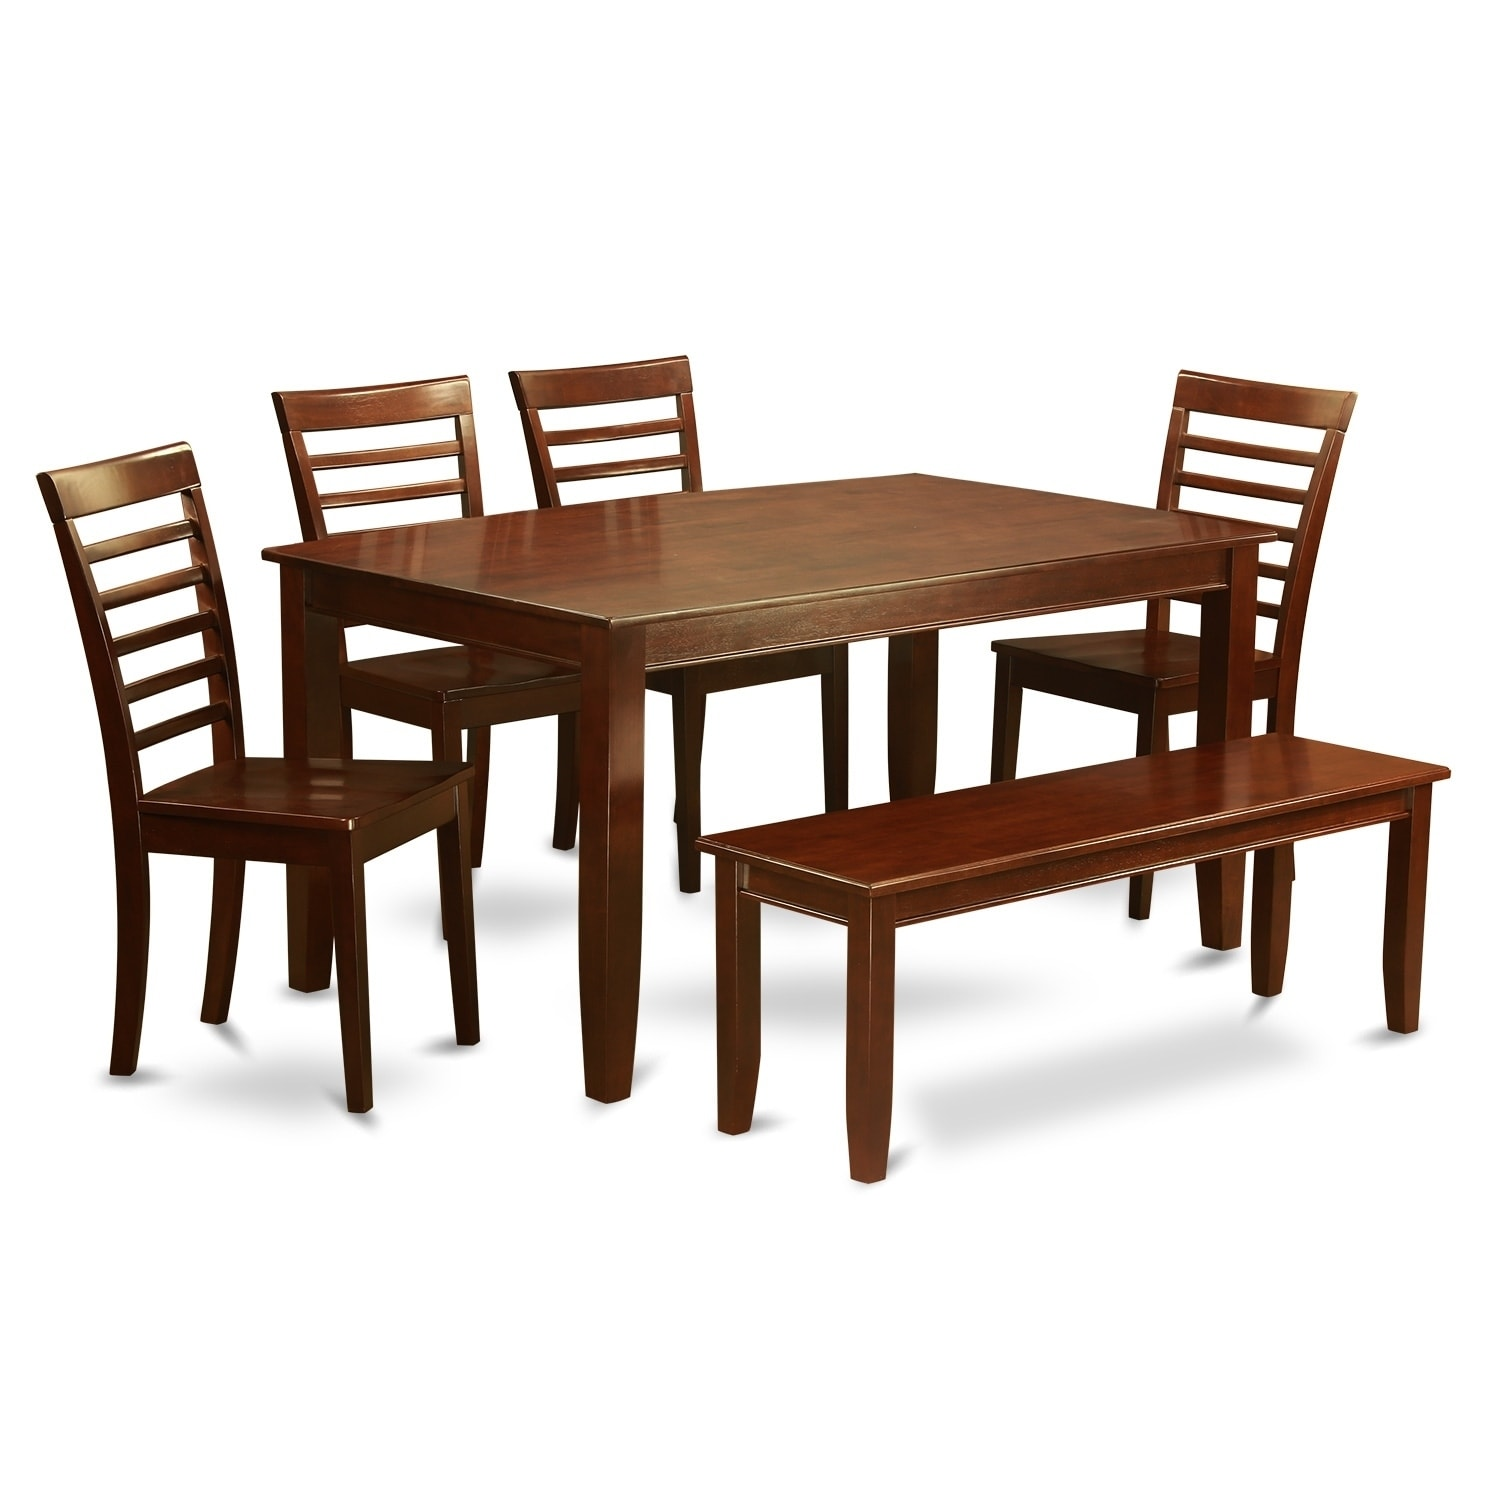 DUML6D-MAH 6 Pc Dining set- Dining Table with 4 Chairs pl...